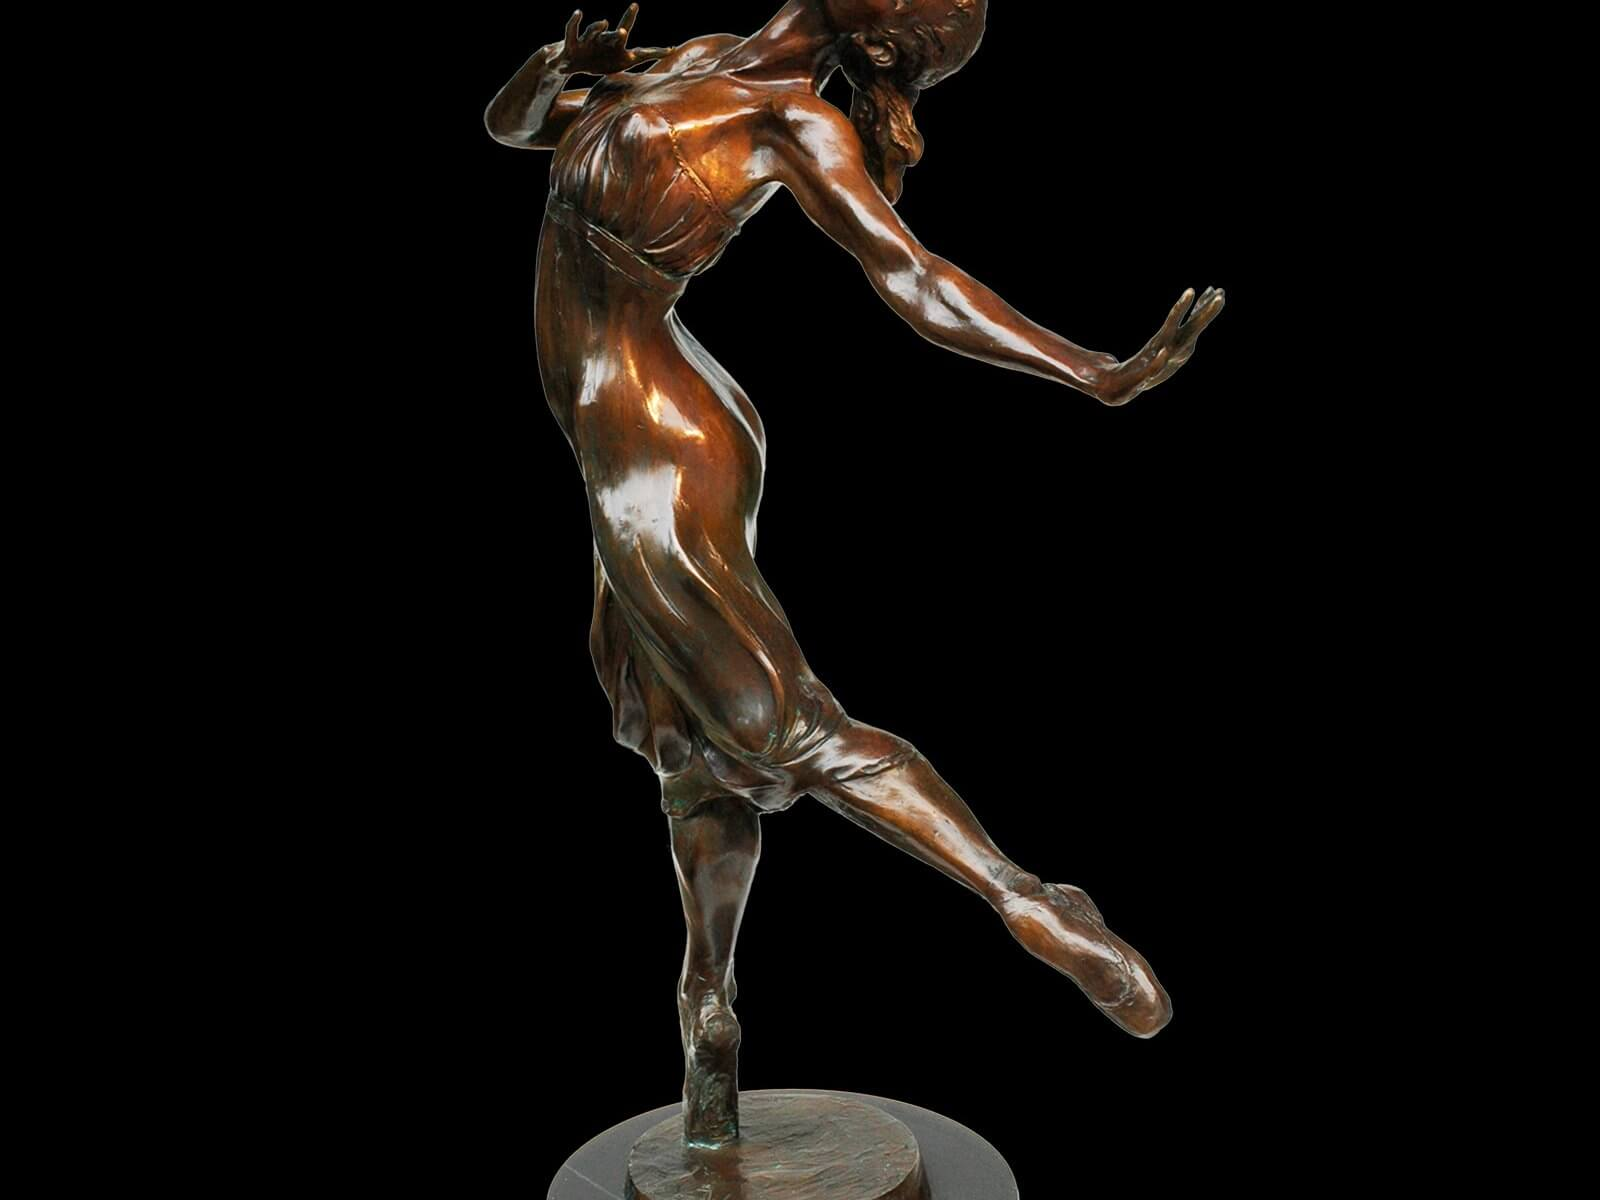 Sonata bronze female ballet dance sculpture by Andrew DeVries copyright 2003. Edition is sold out it is available to commission in a larger version.